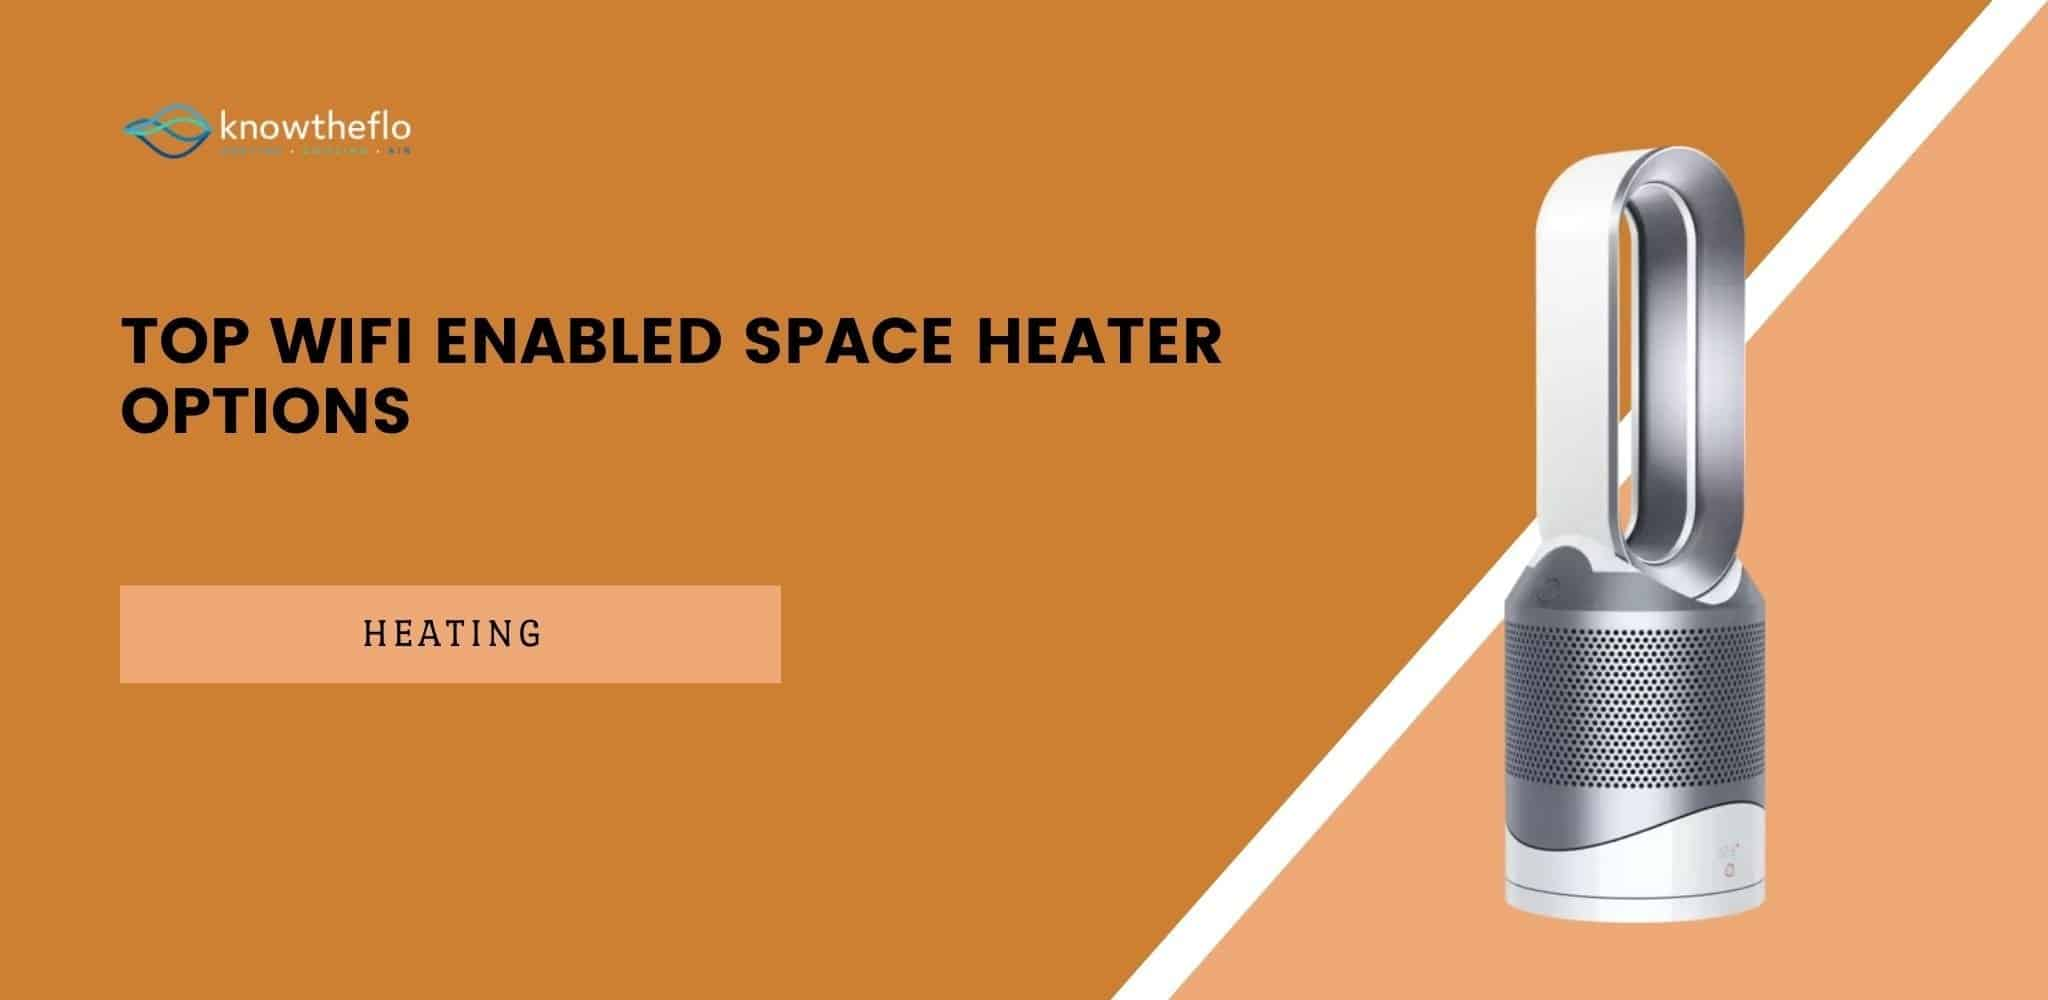 Top WiFi Enabled Space Heater Options